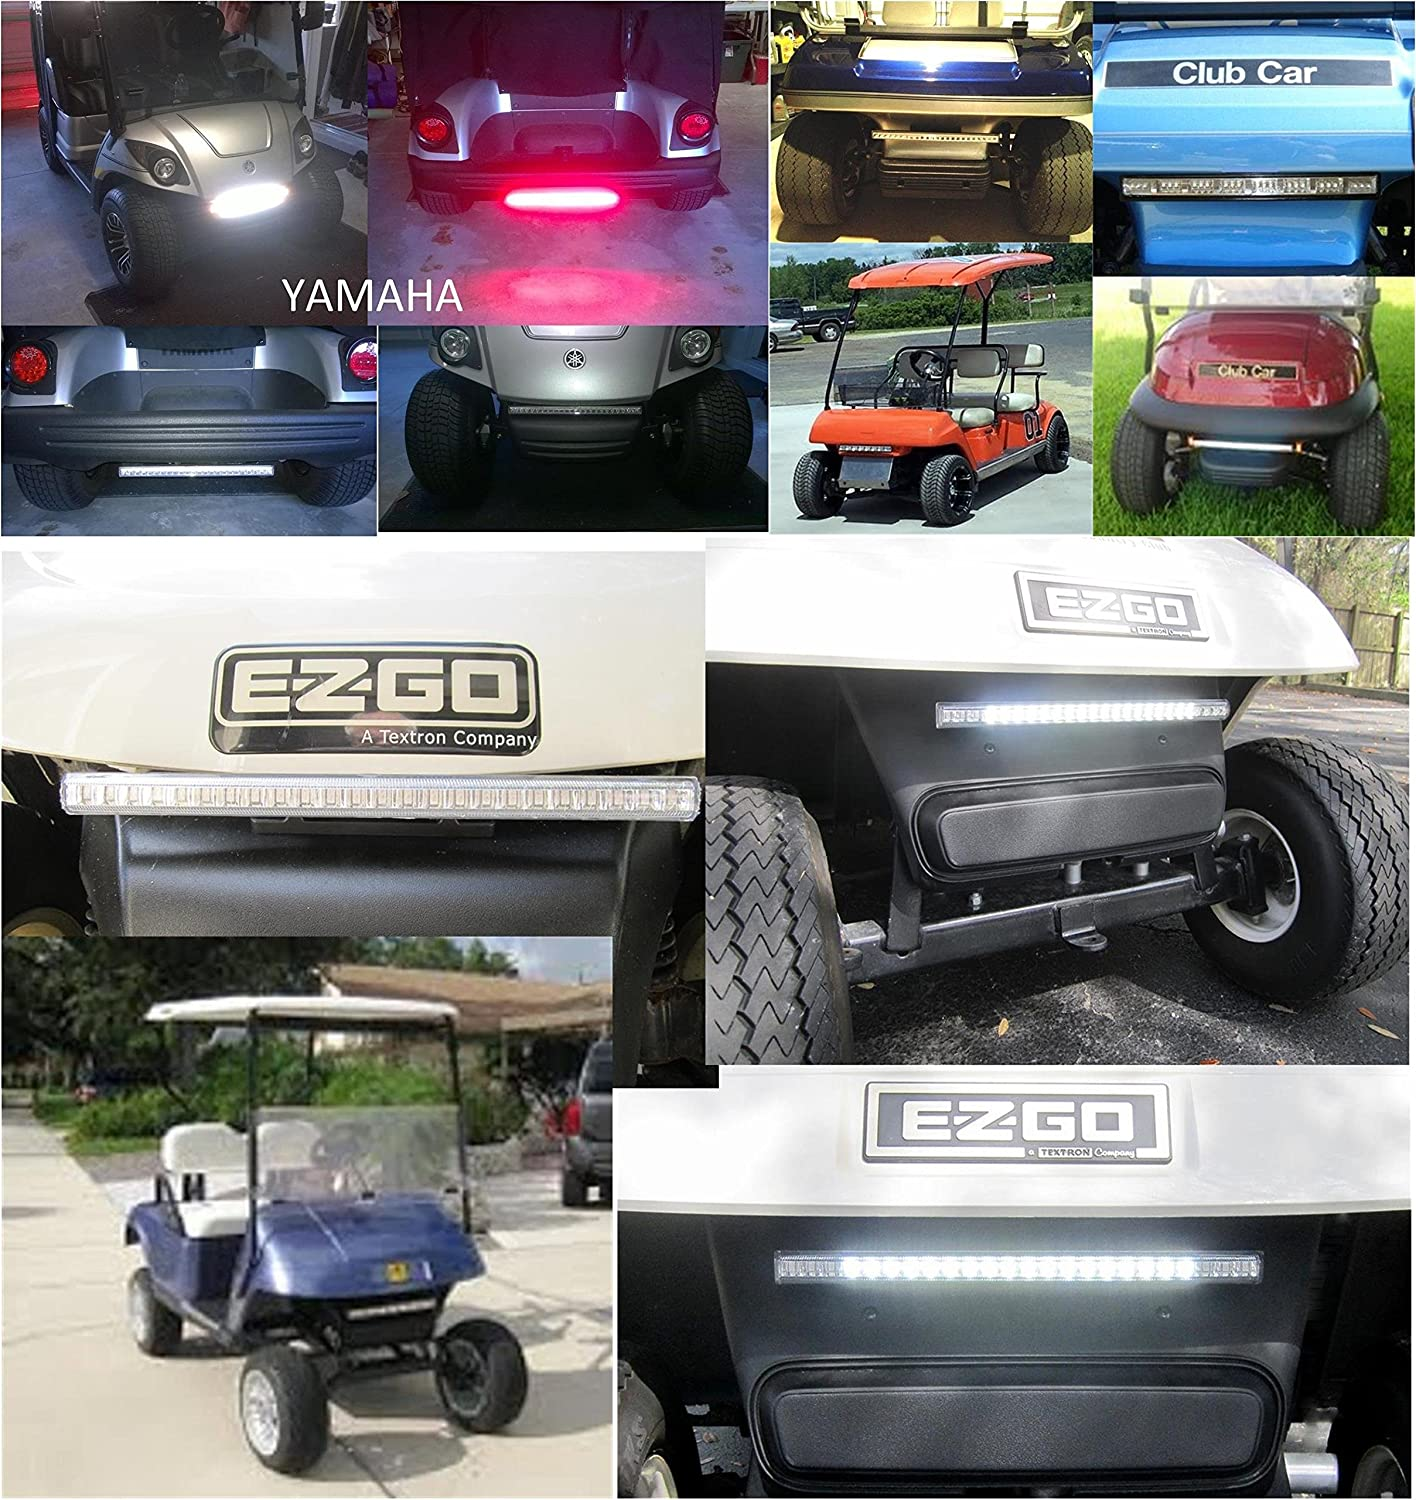 Golf Cart Led Light Kit Liteseasy Standard W Built In 2003 Club Car Ds Wiring Diagram Free Picture Meter Accessories Sports Outdoors